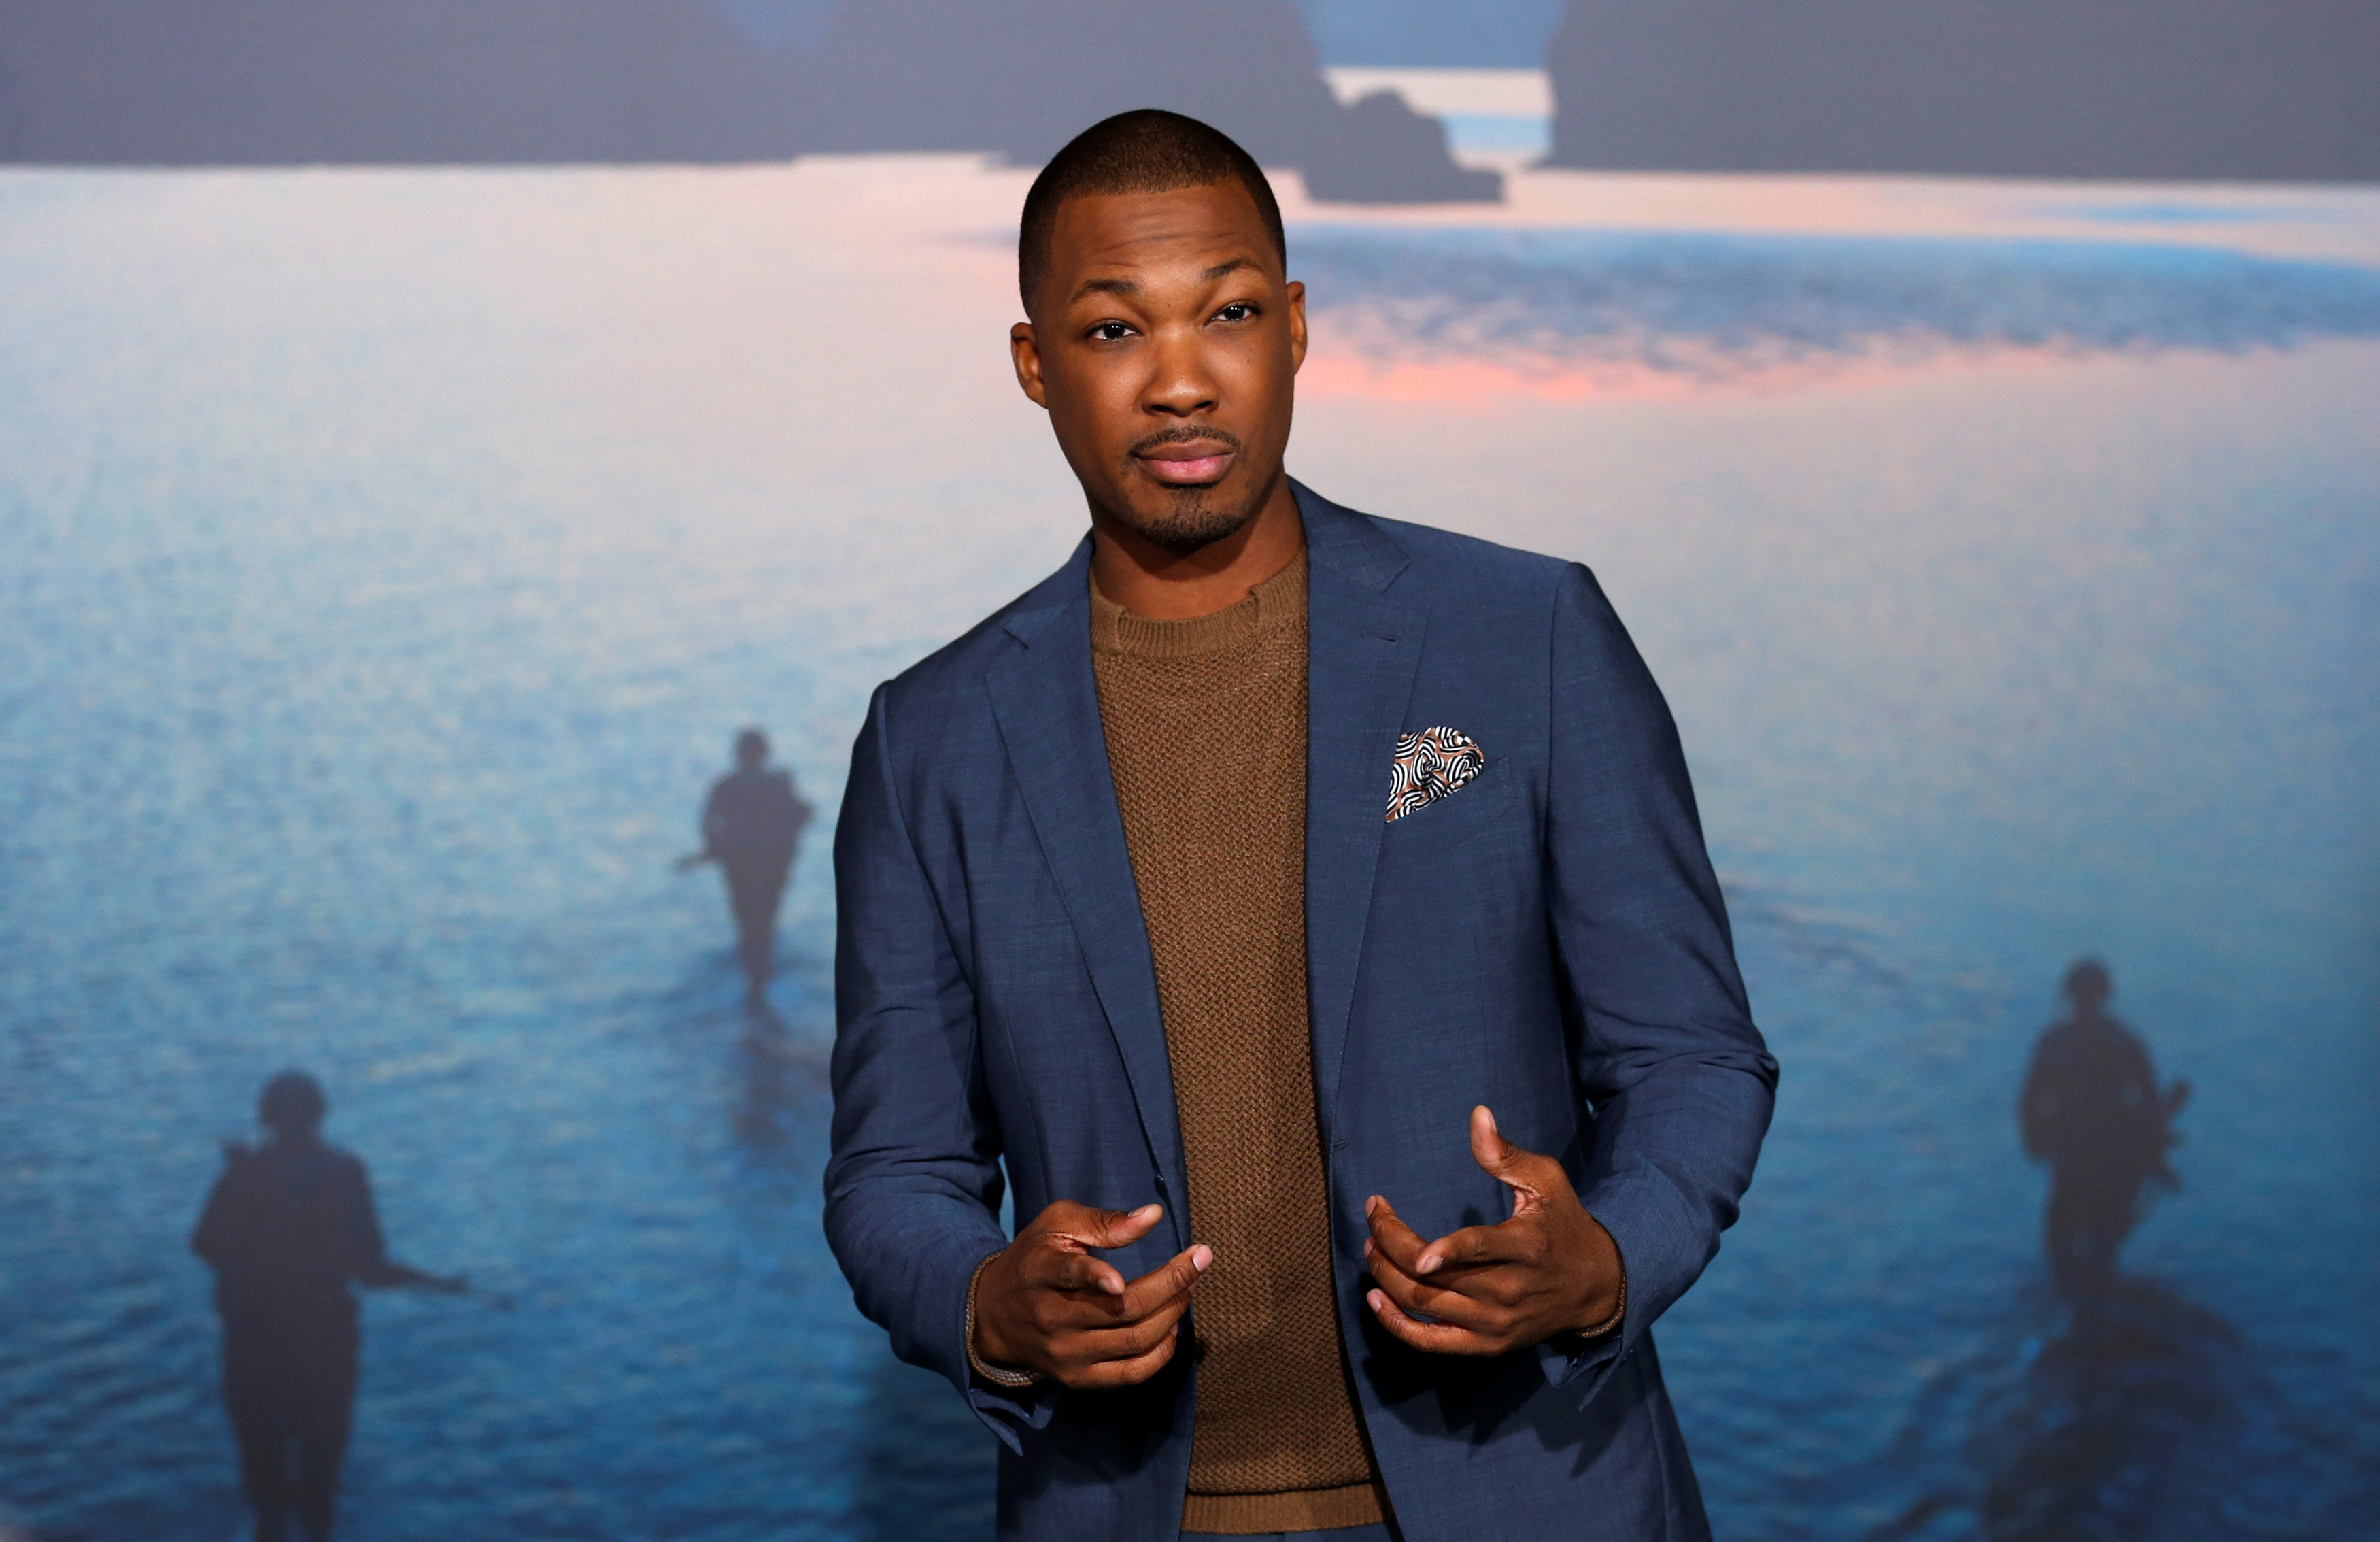 """Cast member Corey Hawkins poses at the premiere of """"Kong: Skull Island"""" in Los Angeles, California, U.S. March 8, 2017. REUTERS/Mario Anzuoni"""